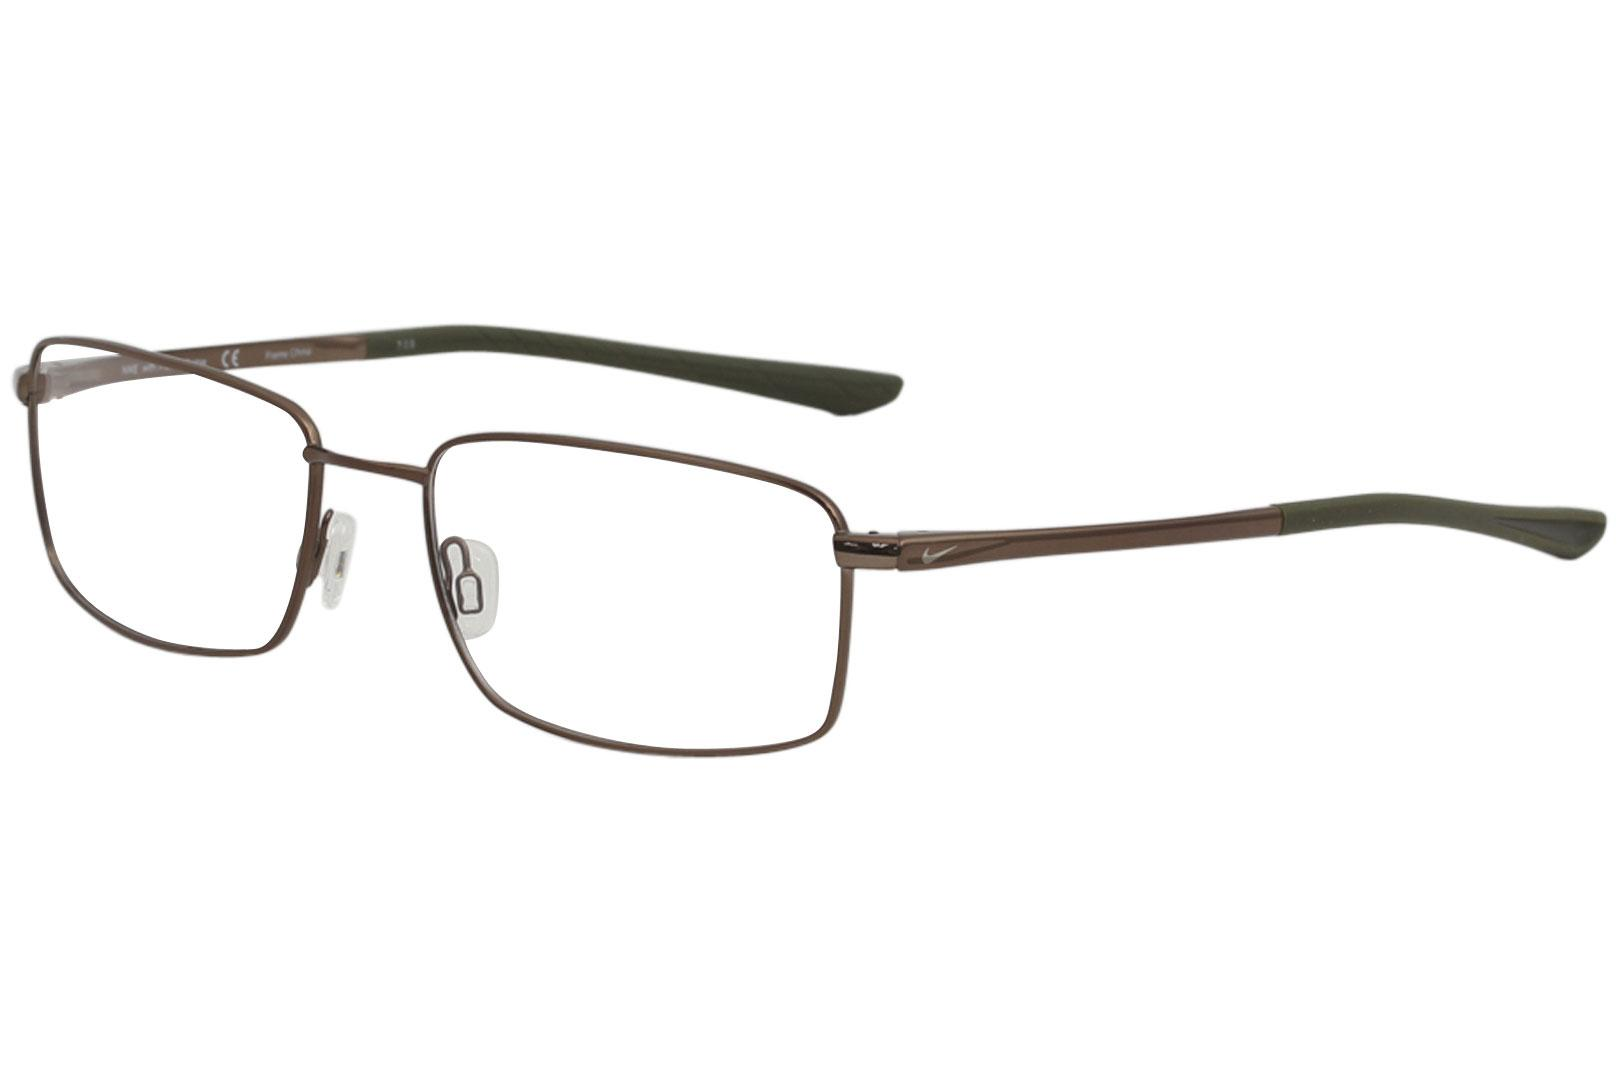 0e1ecdfcfb Nike Men s Eyeglasses 4283 Full Rim Flexon Optical Frame